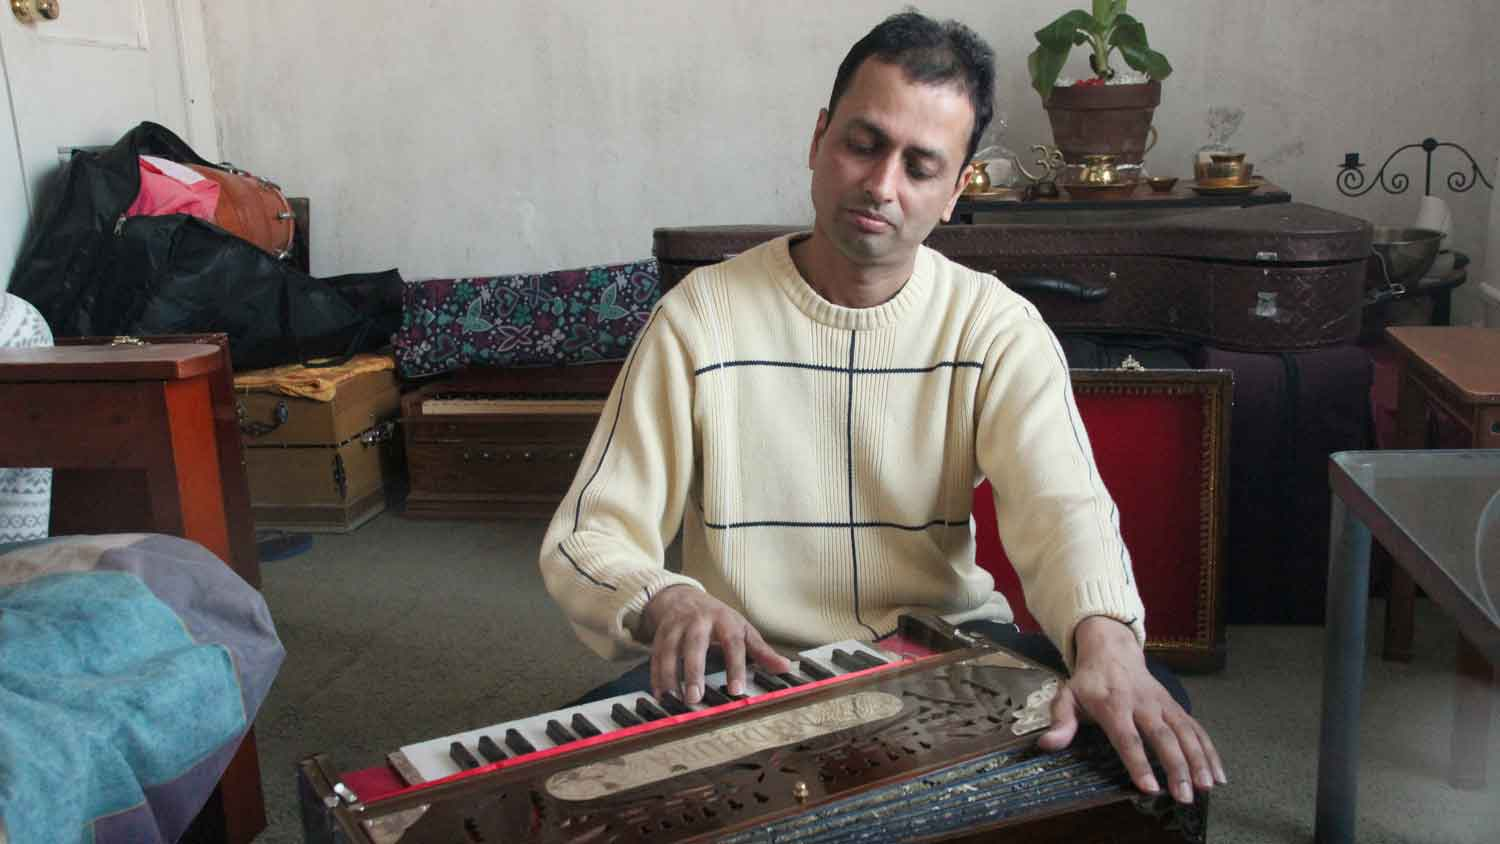 """""""I think I'm blessed in tuning harmoniums,"""" says Mindra Sahadeo, who is from Guyana but now lives in New York City. """"I find joy, actually, in fixing them."""""""